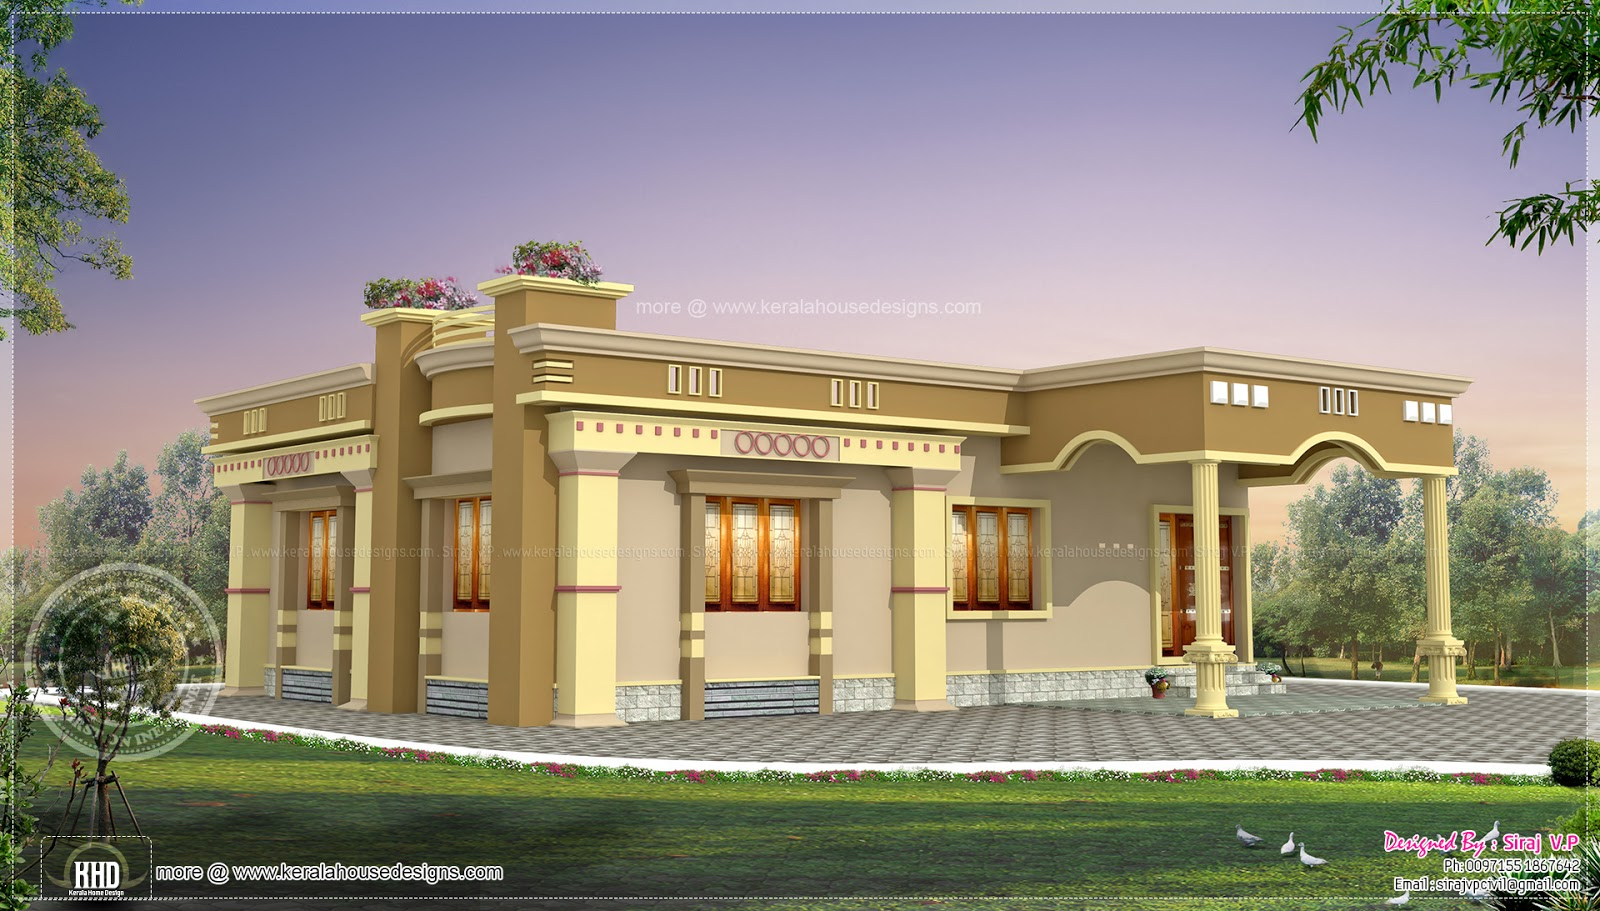 Tamilnadu small house front elevation design joy studio for Tamilnadu house models